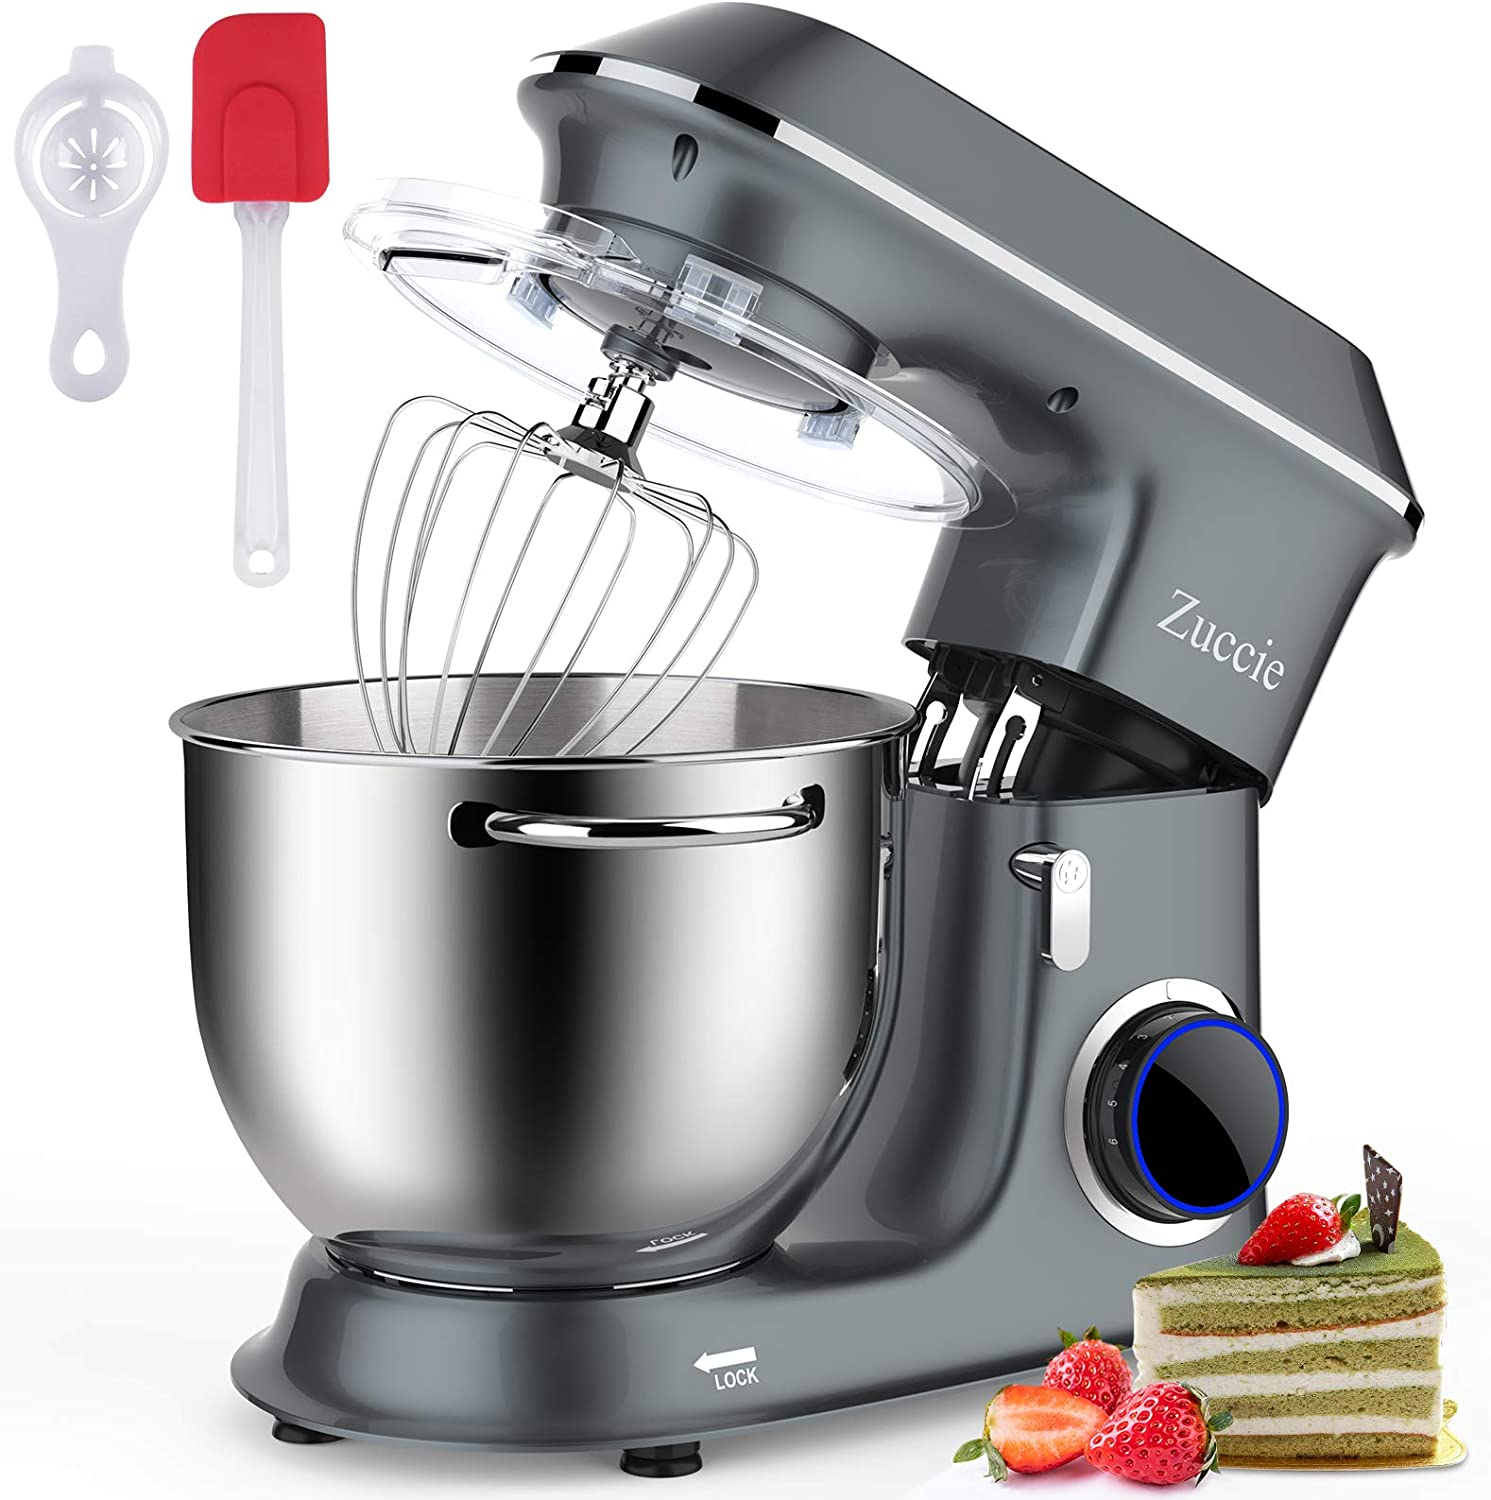 Zuccie Electric Stand Mixer,660W 6+1-Speed Tilt-Head Food Mixer,Kitchen Stand Mixer with 8.5QT Stainless Steel Bowl,Dough Hook, Mixing Beater and Whisk,Splash Guard,Dishwasher Safe (Gray)